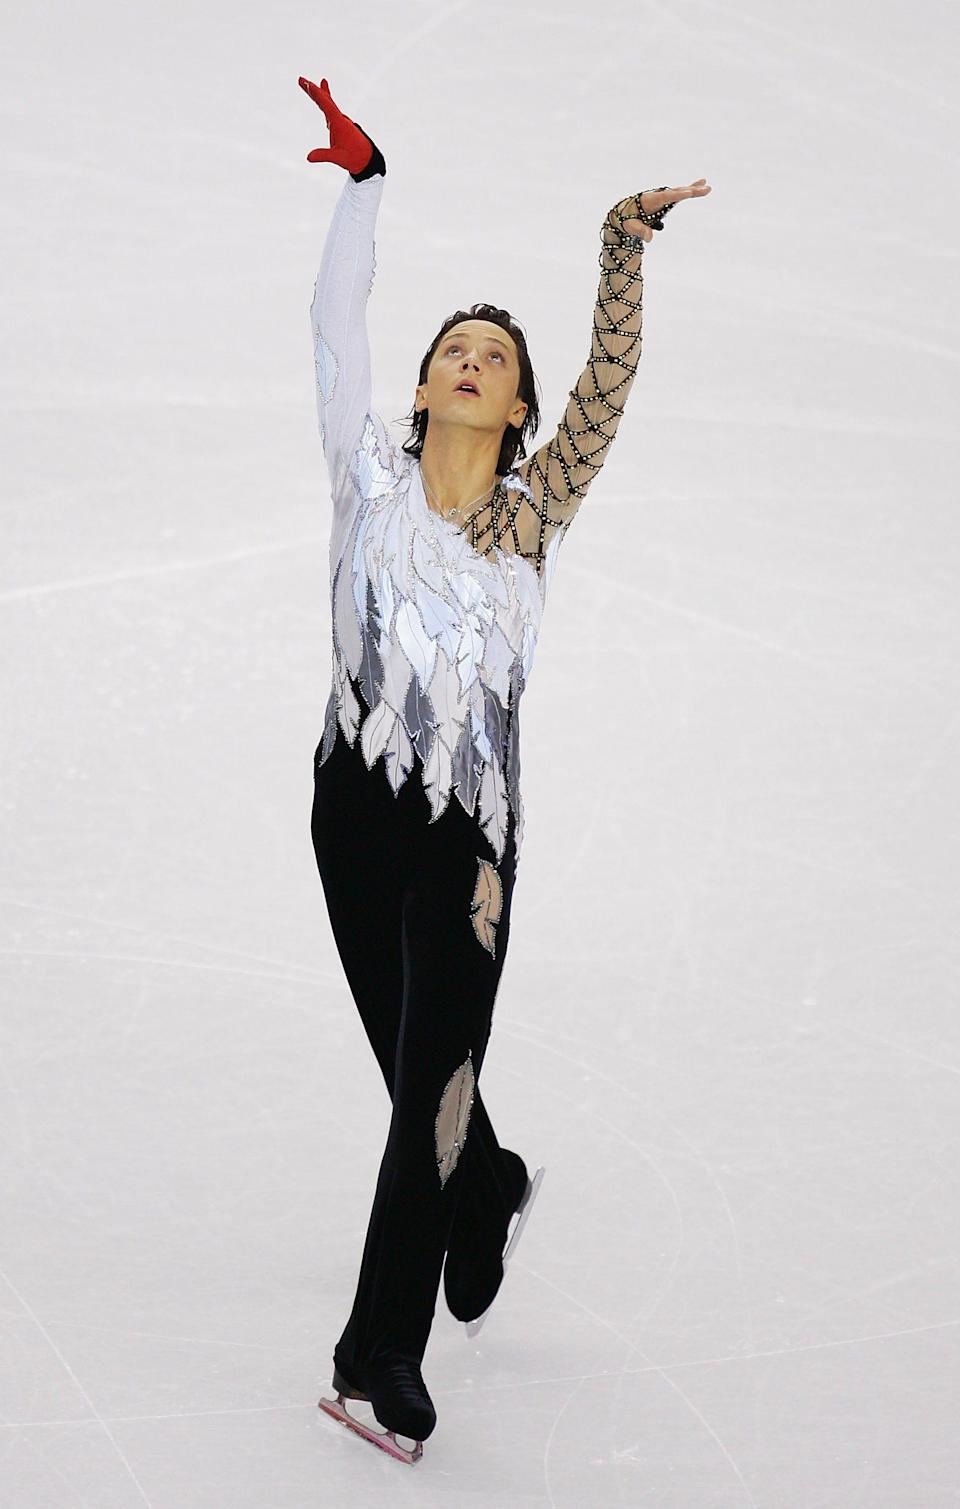 Johnny Weir at the 2006 Olympics wearing a swan costume with a red glove on one hand